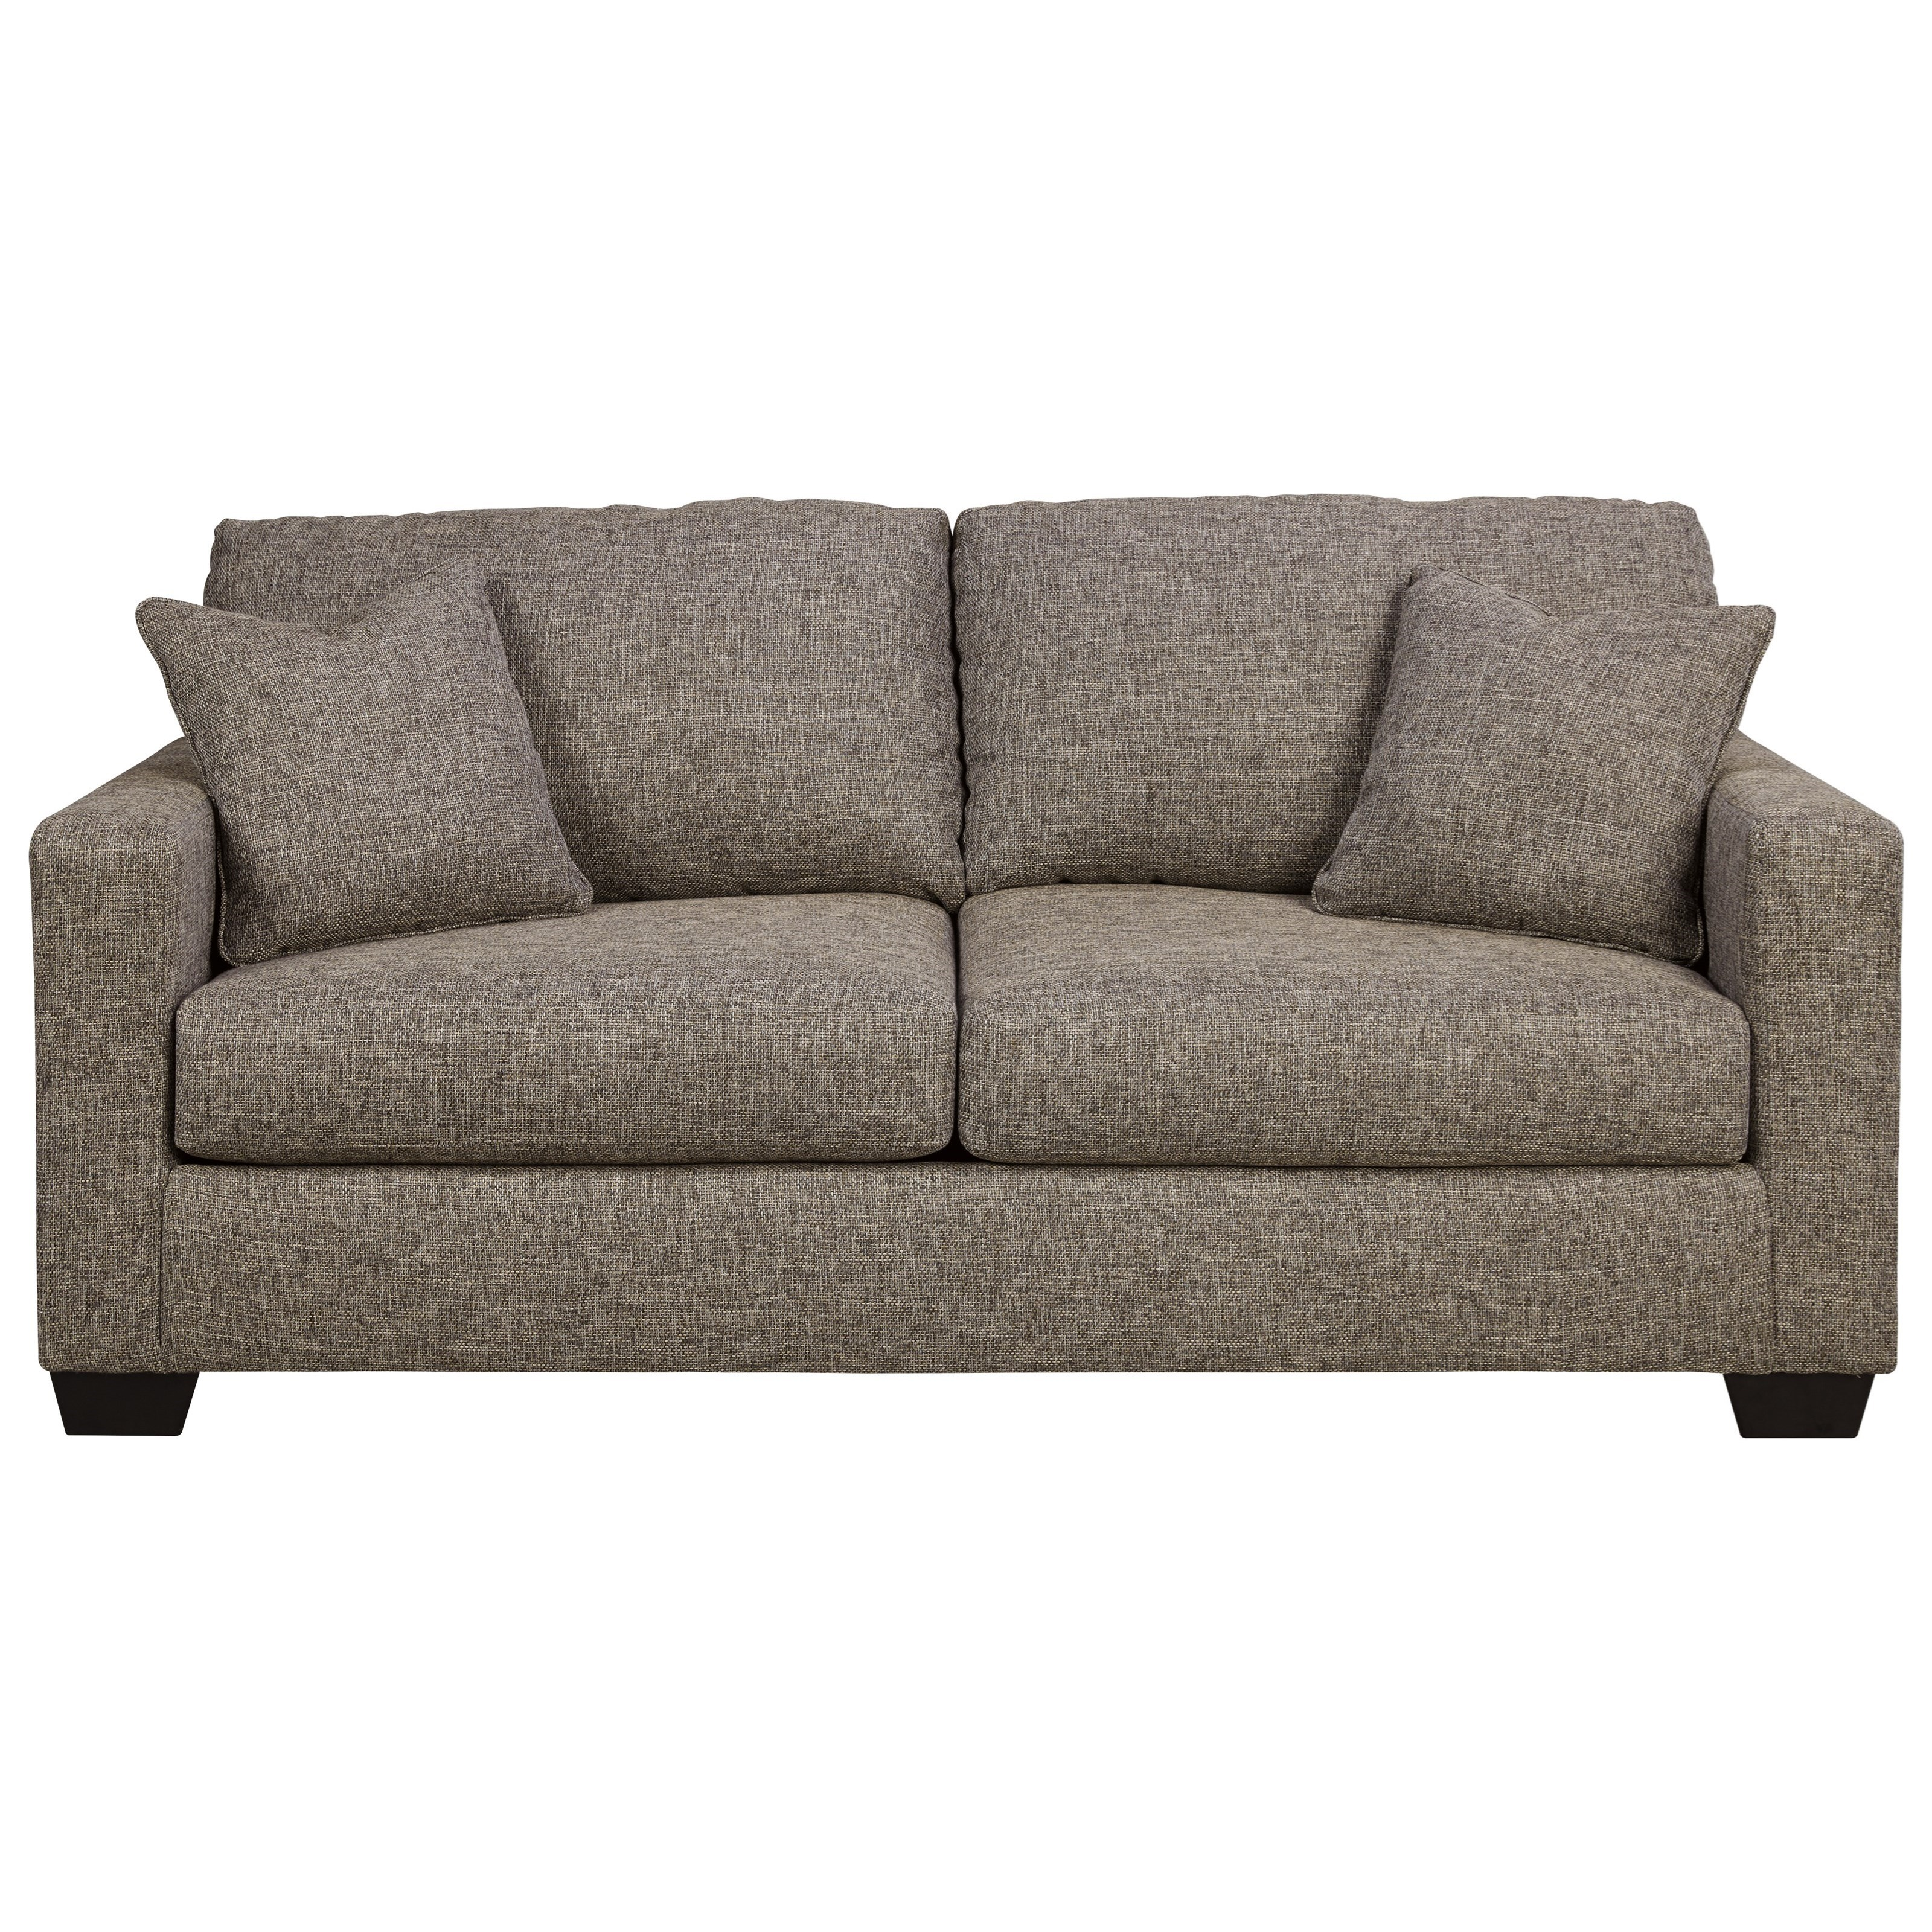 Ashley Furniture Hearne 3200036 Contemporary Full Sofa Sleeper With Track Arms Furniture And